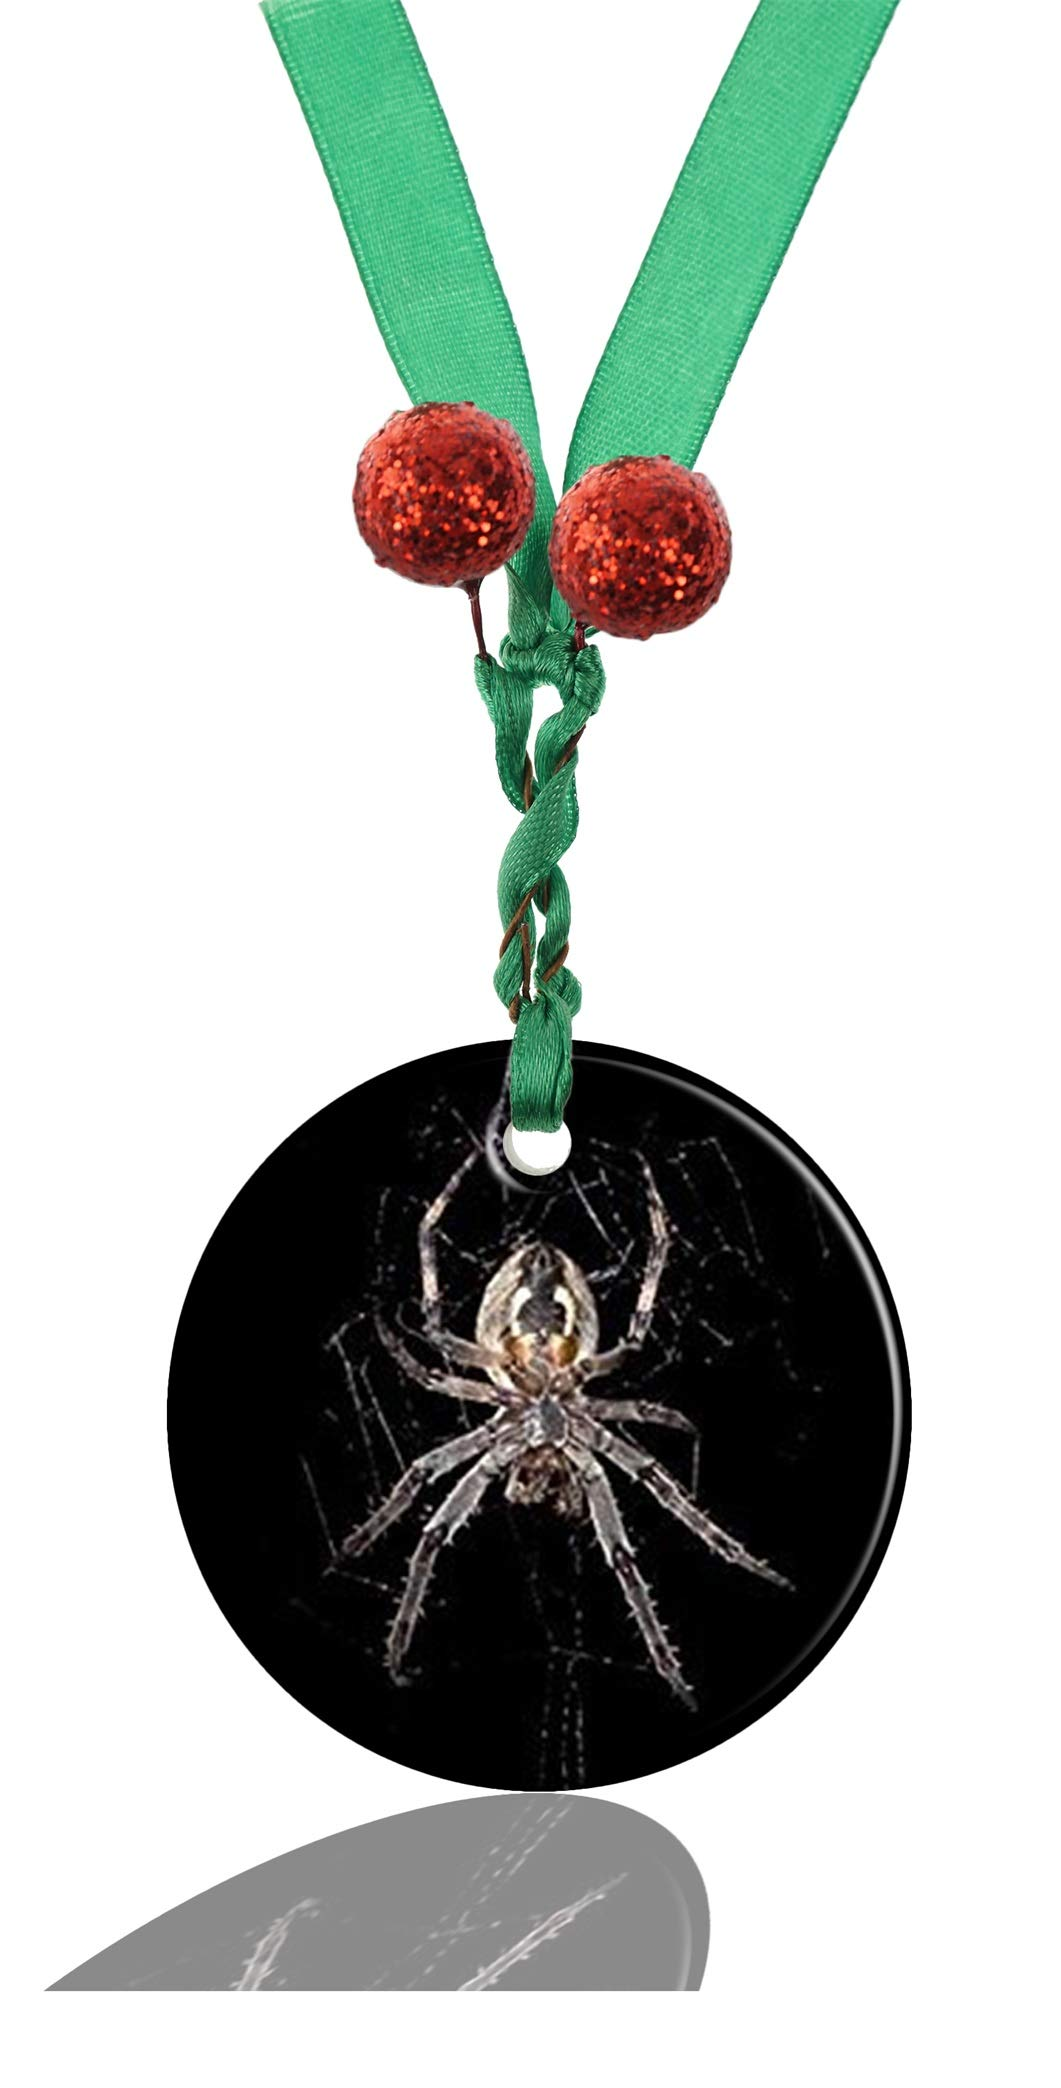 GDEE Custom Animals Spider Personalized Round Porcelain Ornaments Christmas Ornaments Home Decoration